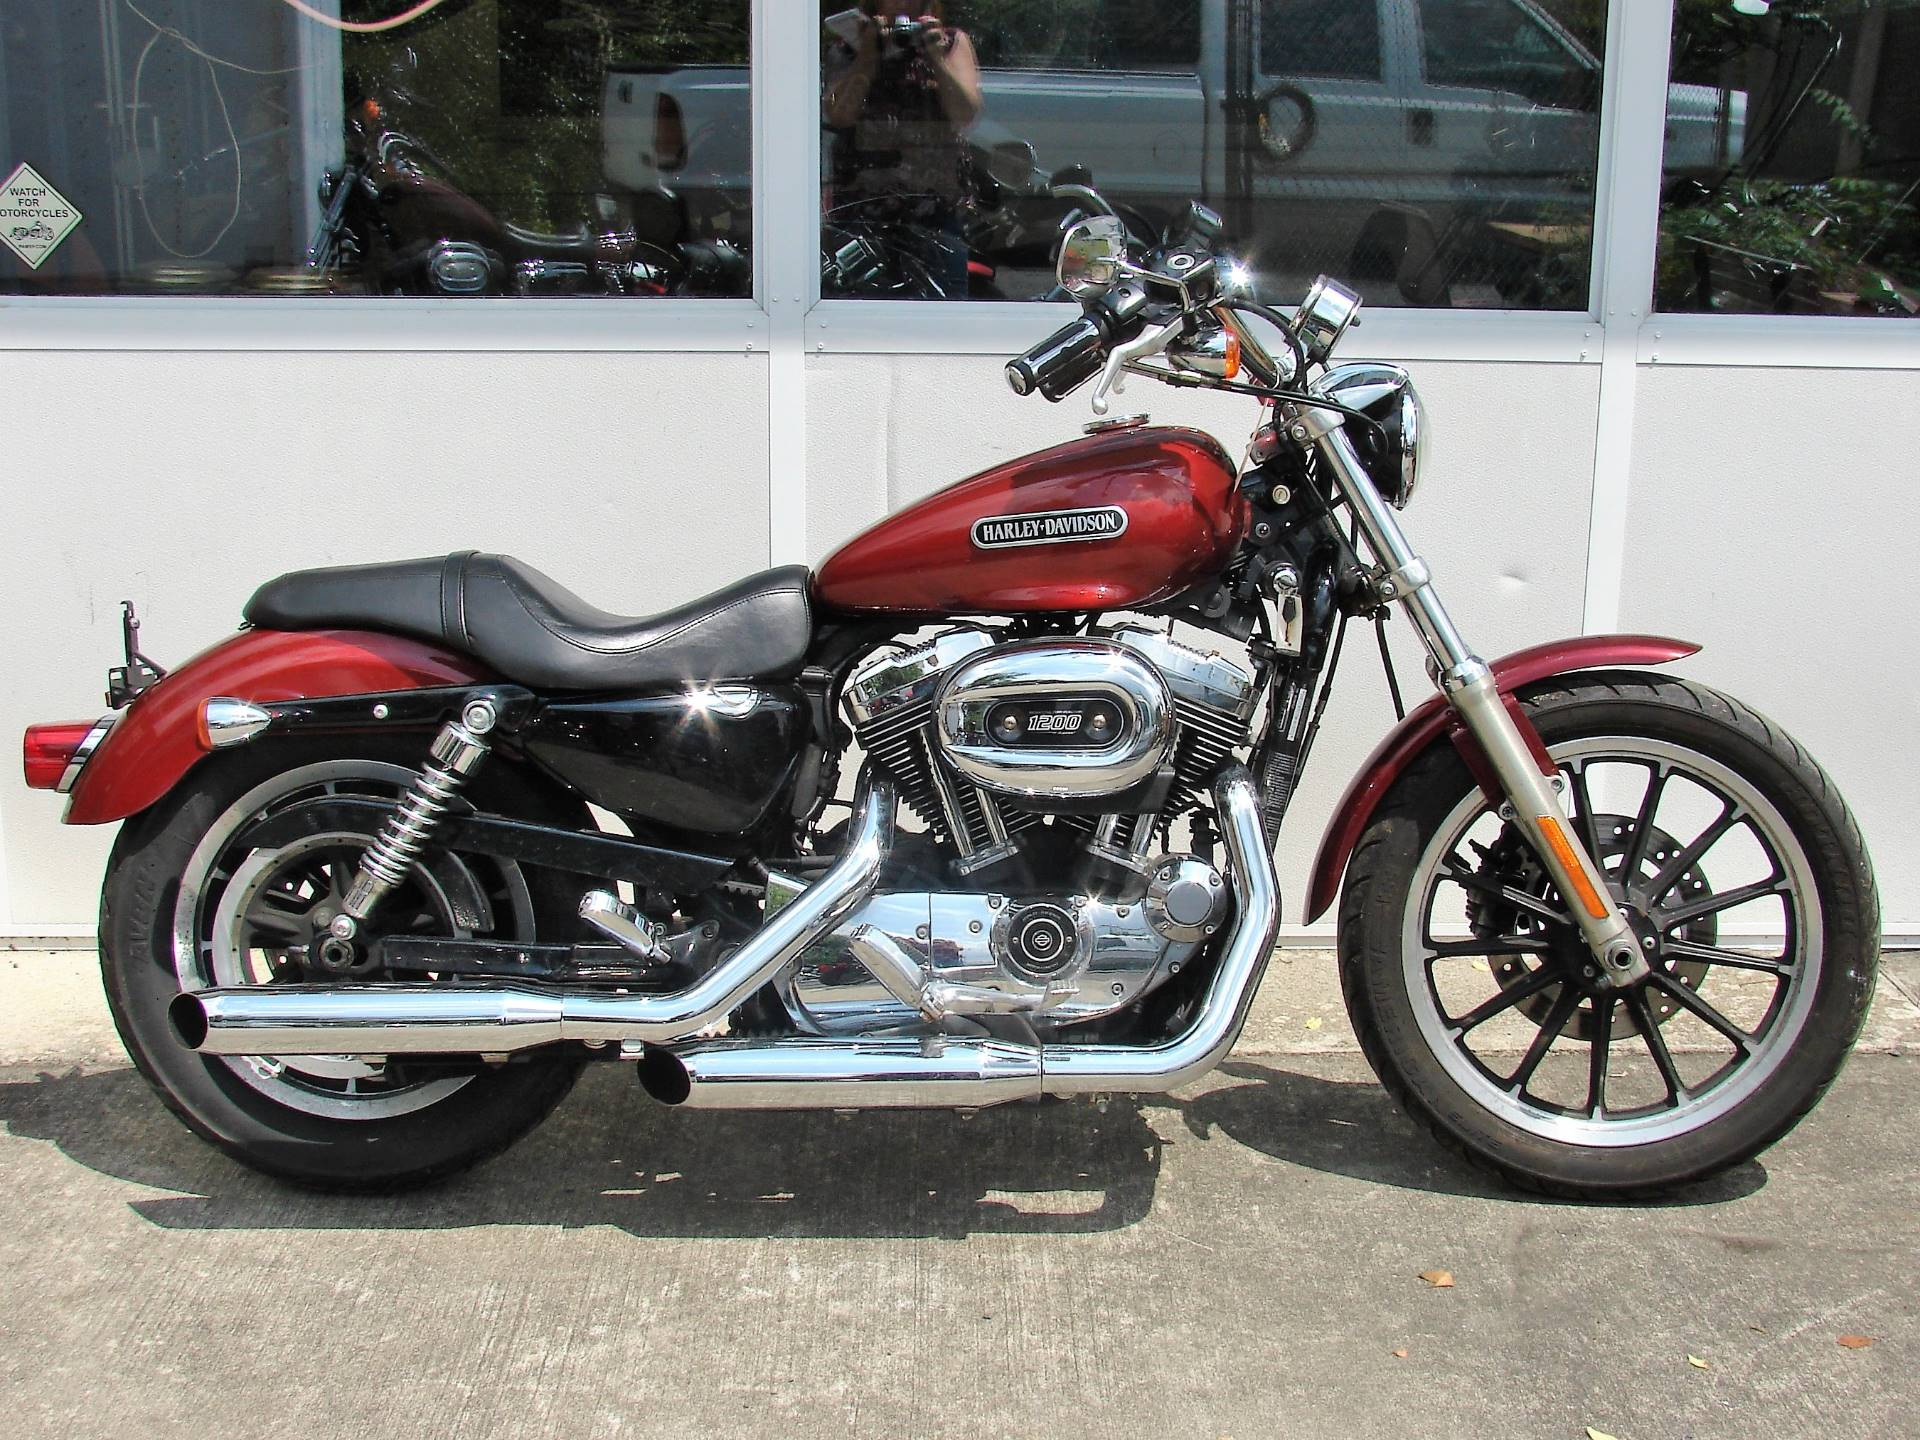 2009 Harley-Davidson XL Sportster 1200cc in Williamstown, New Jersey - Photo 6